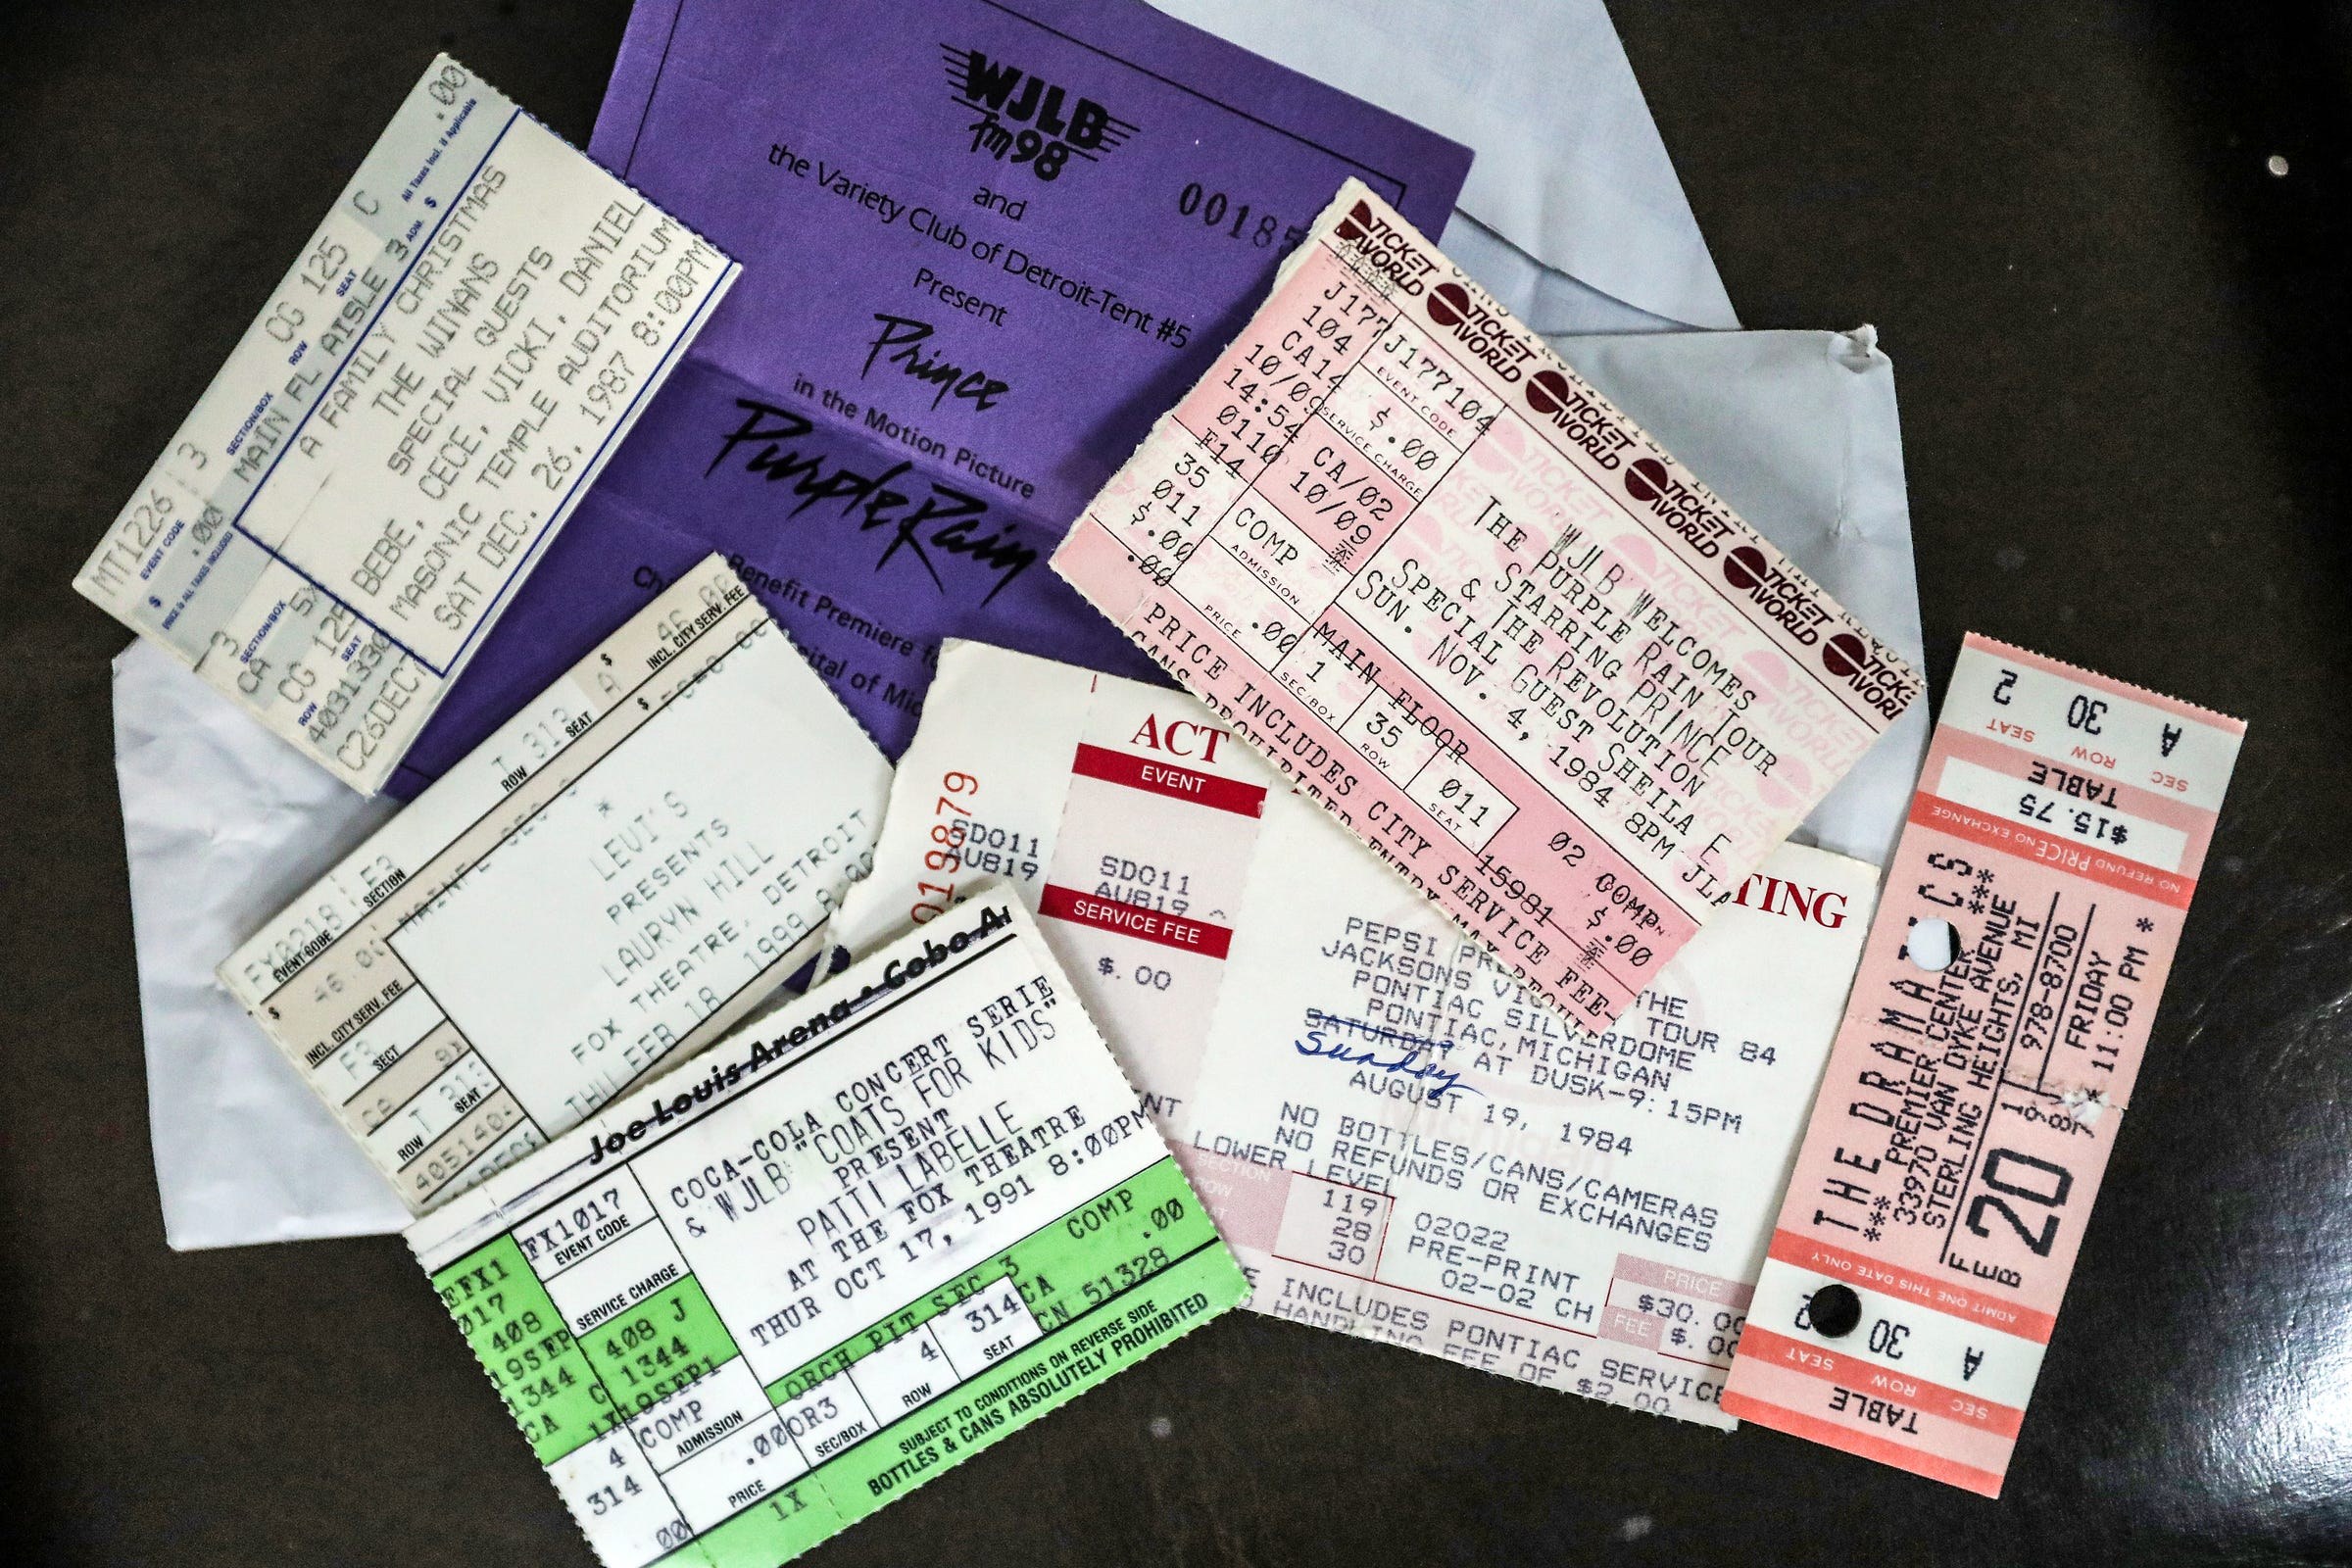 """Lee Robinson looks over old concert ticket stubs, like the ticket to see Prince and the Revolution with special guest Sheila E that opened his tour at Joe Louis Arena in Detroit on Nov. 4, 1984. Robinson, who worked for WJLB radio station at the time, gets his hair cut by Barber Hobson """"Hoppy"""" Colvin, where he often talks about music at Big D's Barber and Unisex Salon in Detroit, photographed on Wednesday, March 11, 2020."""